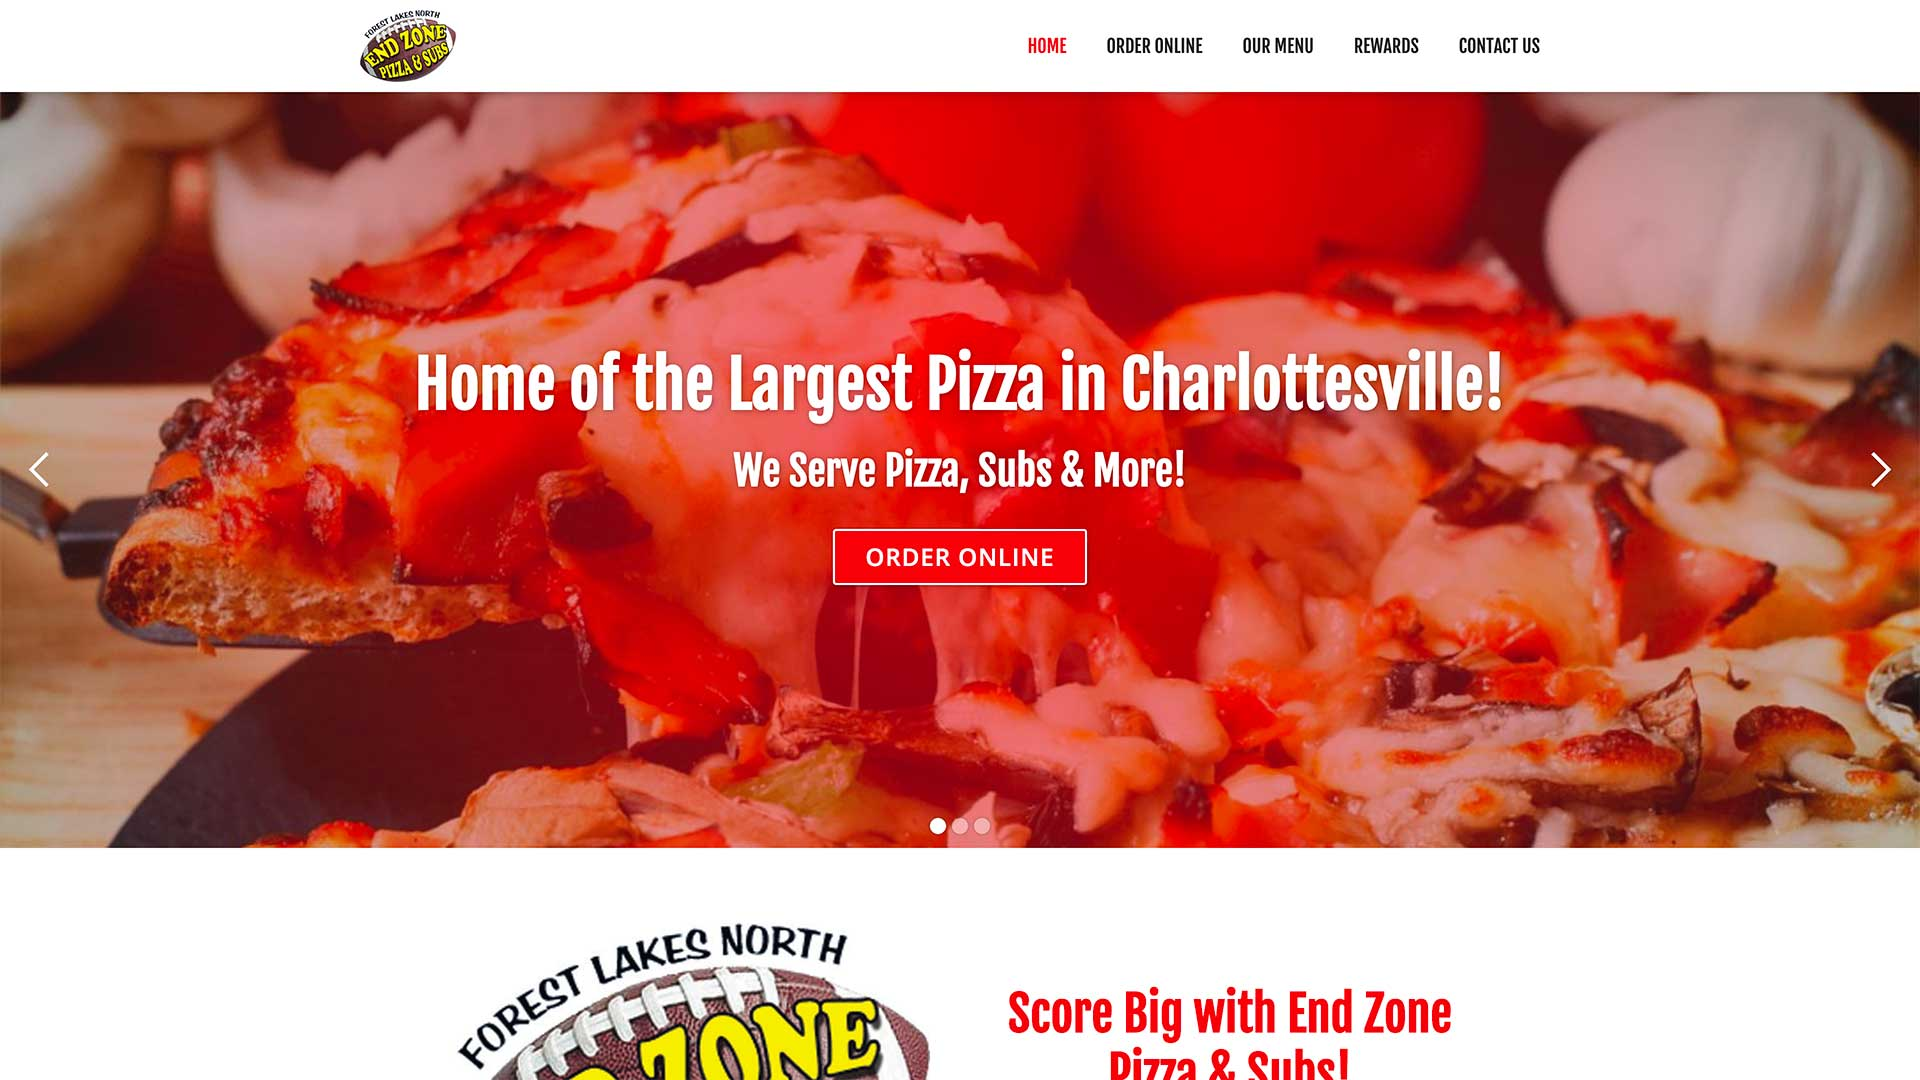 End Zone Pizza & Subs